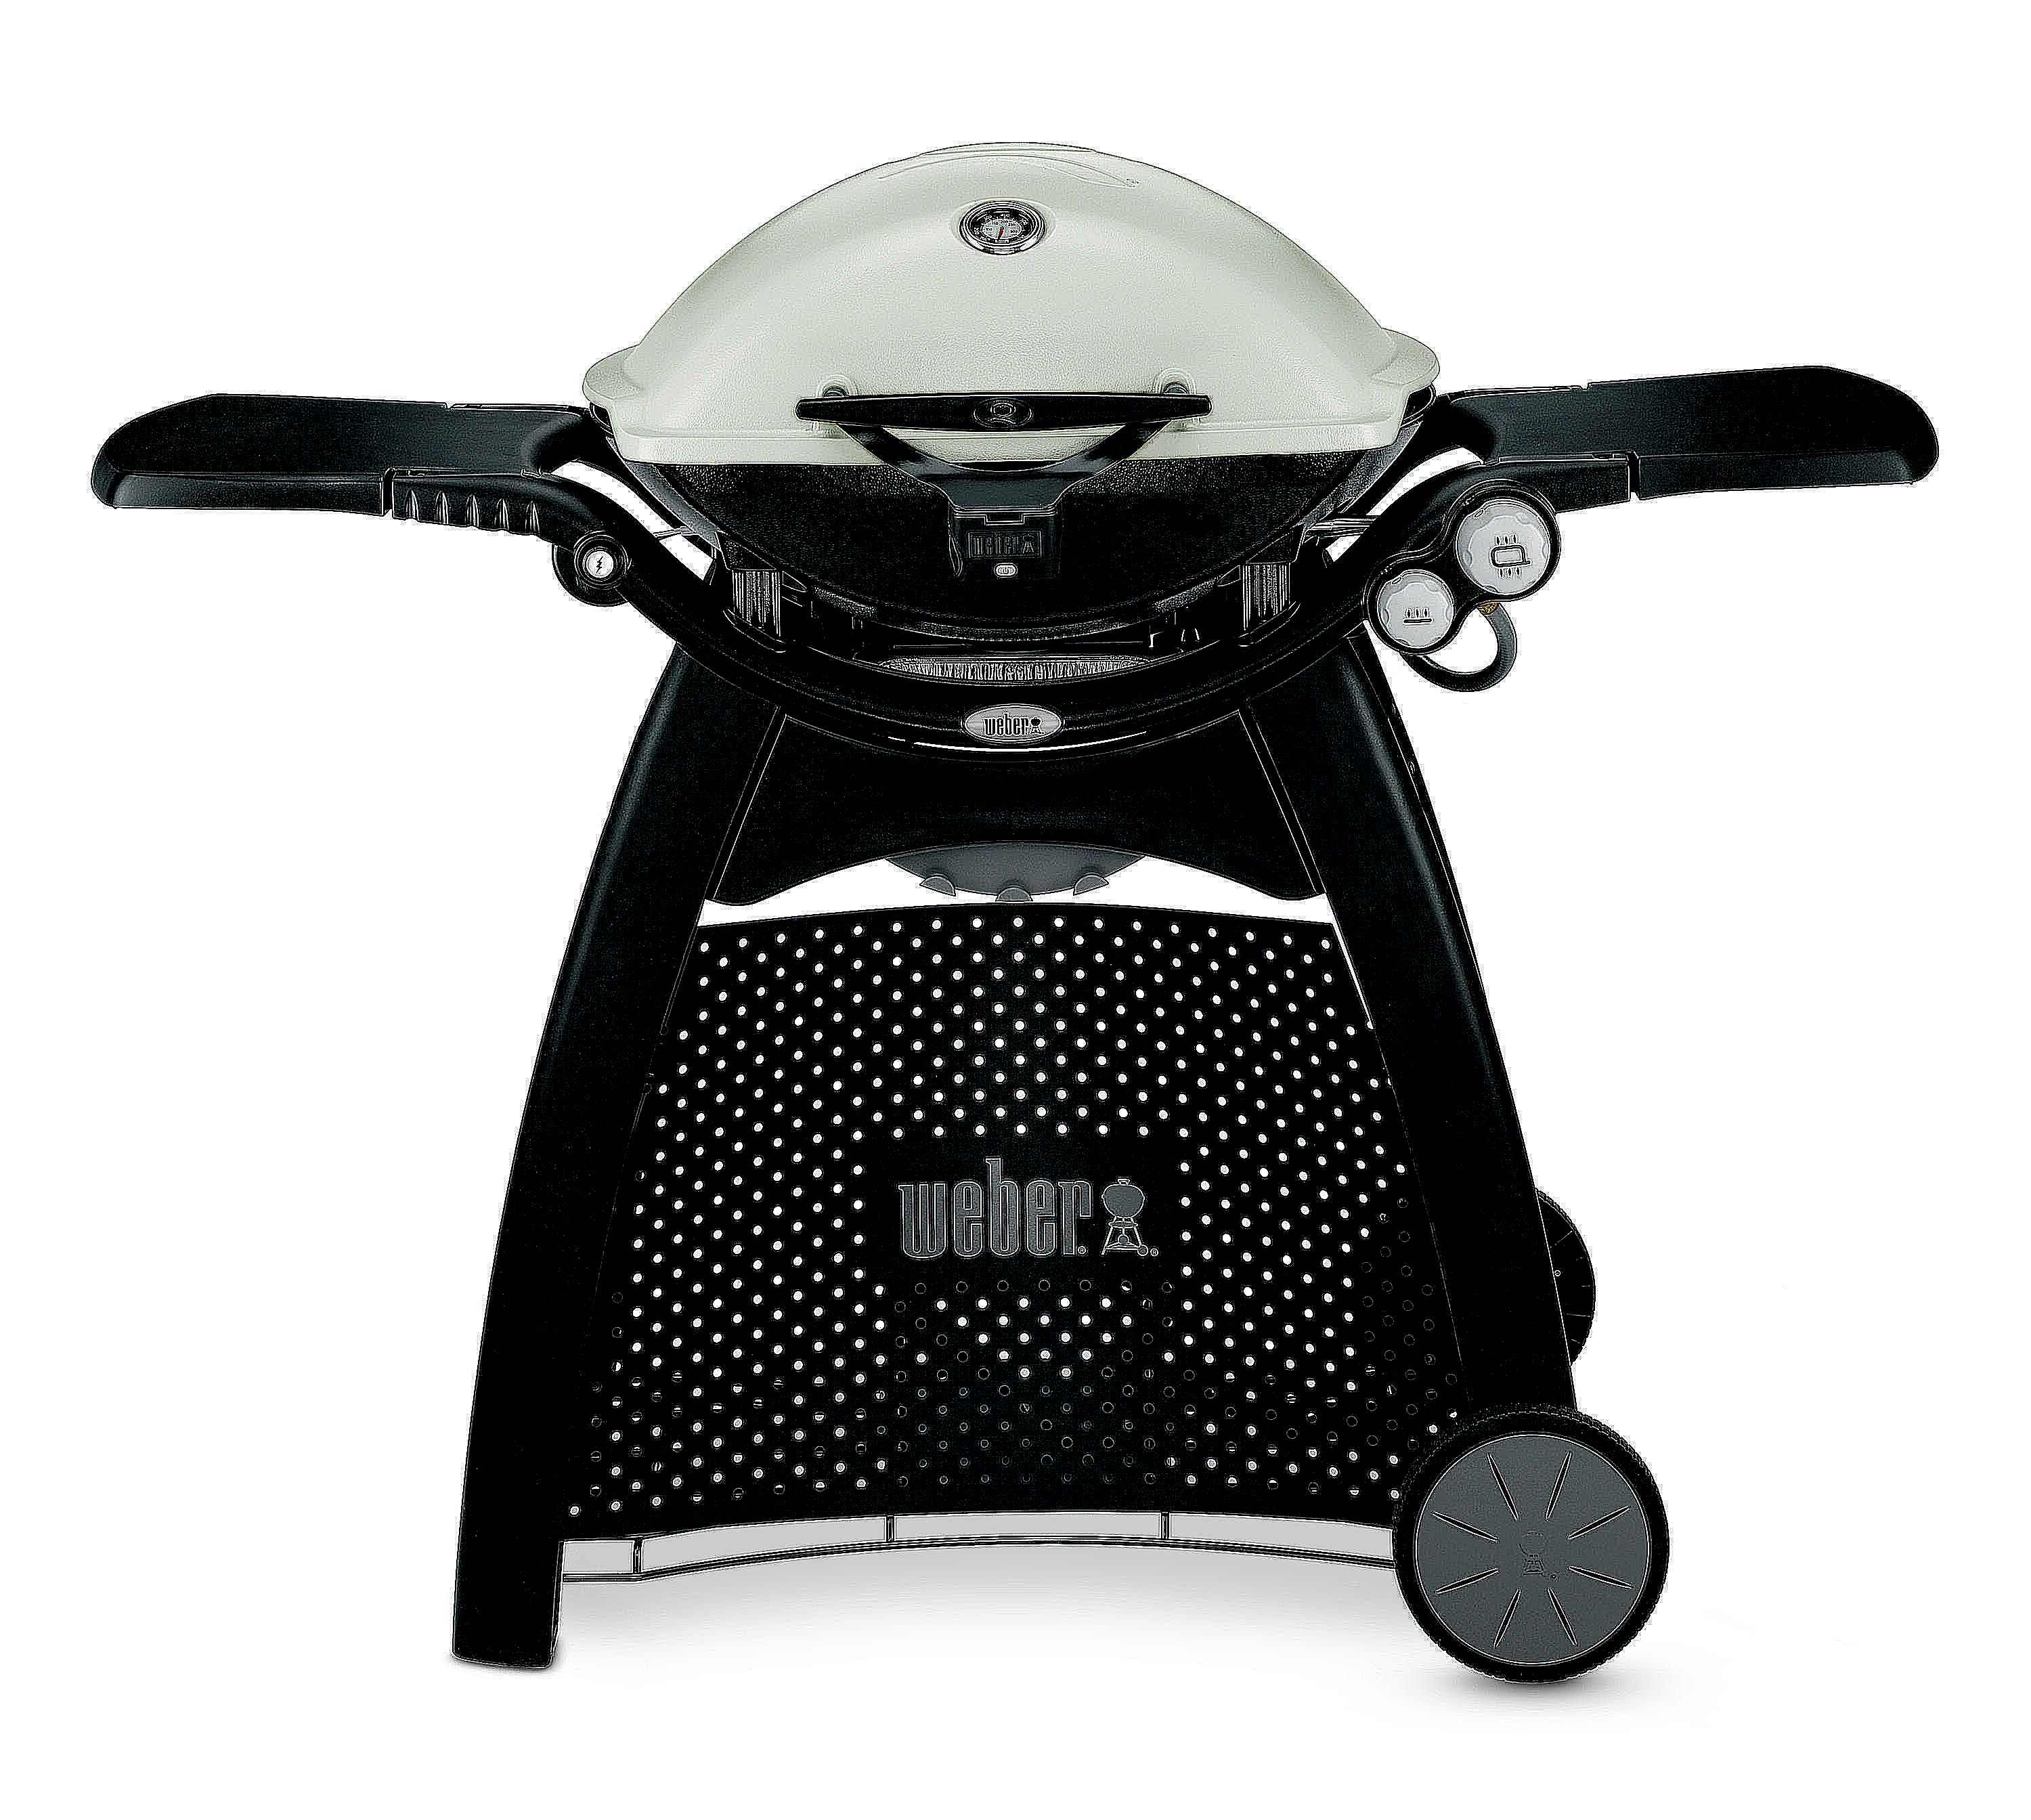 The 9 Best Small Grills to Buy in 2019